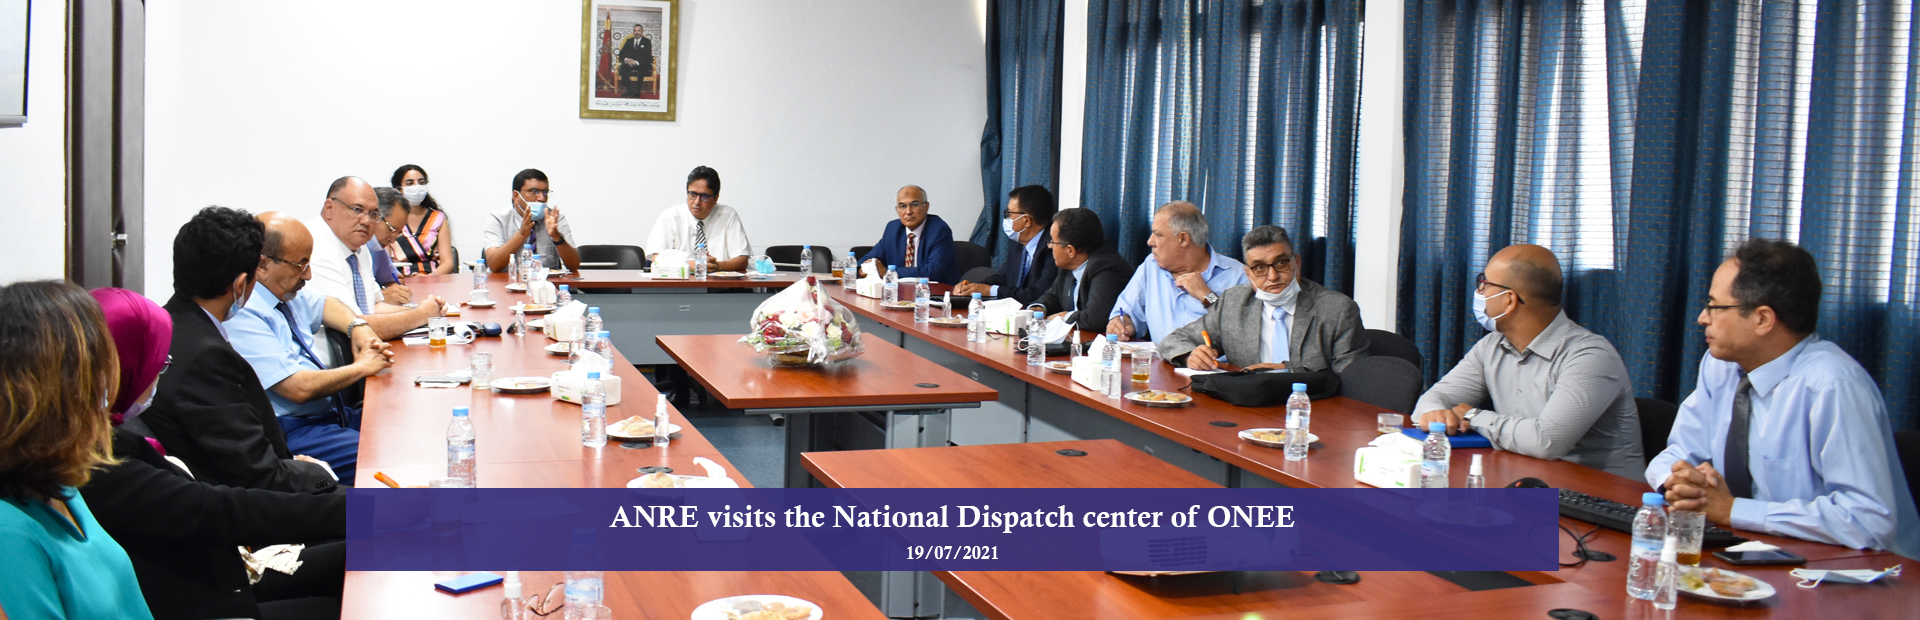 ANRE visits the National Dispatch center of ONEE